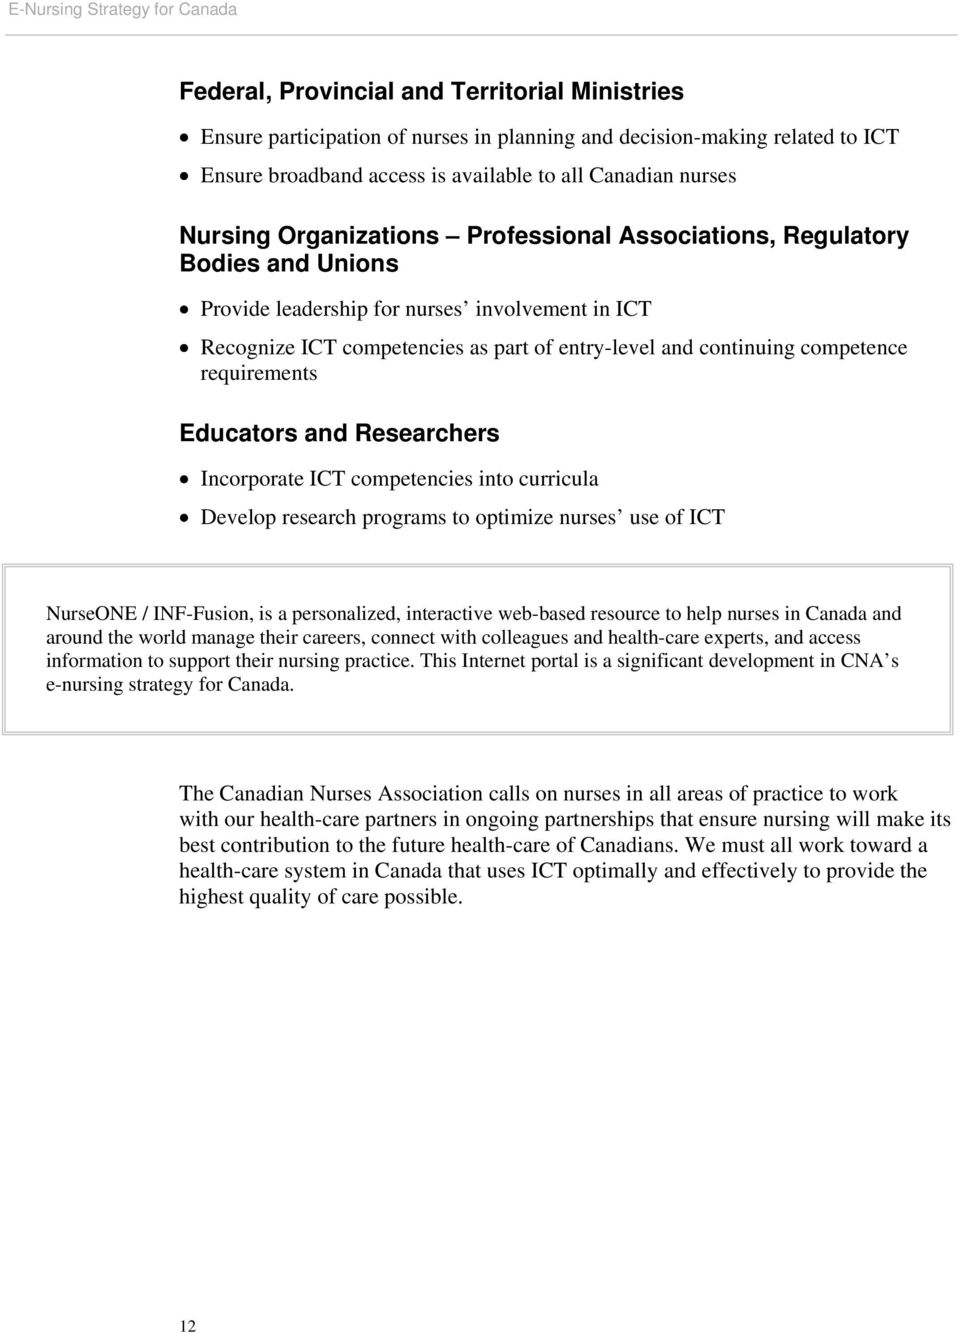 continuing competence requirements Educators and Researchers Incorporate ICT competencies into curricula Develop research programs to optimize nurses use of ICT NurseONE / INF-Fusion, is a